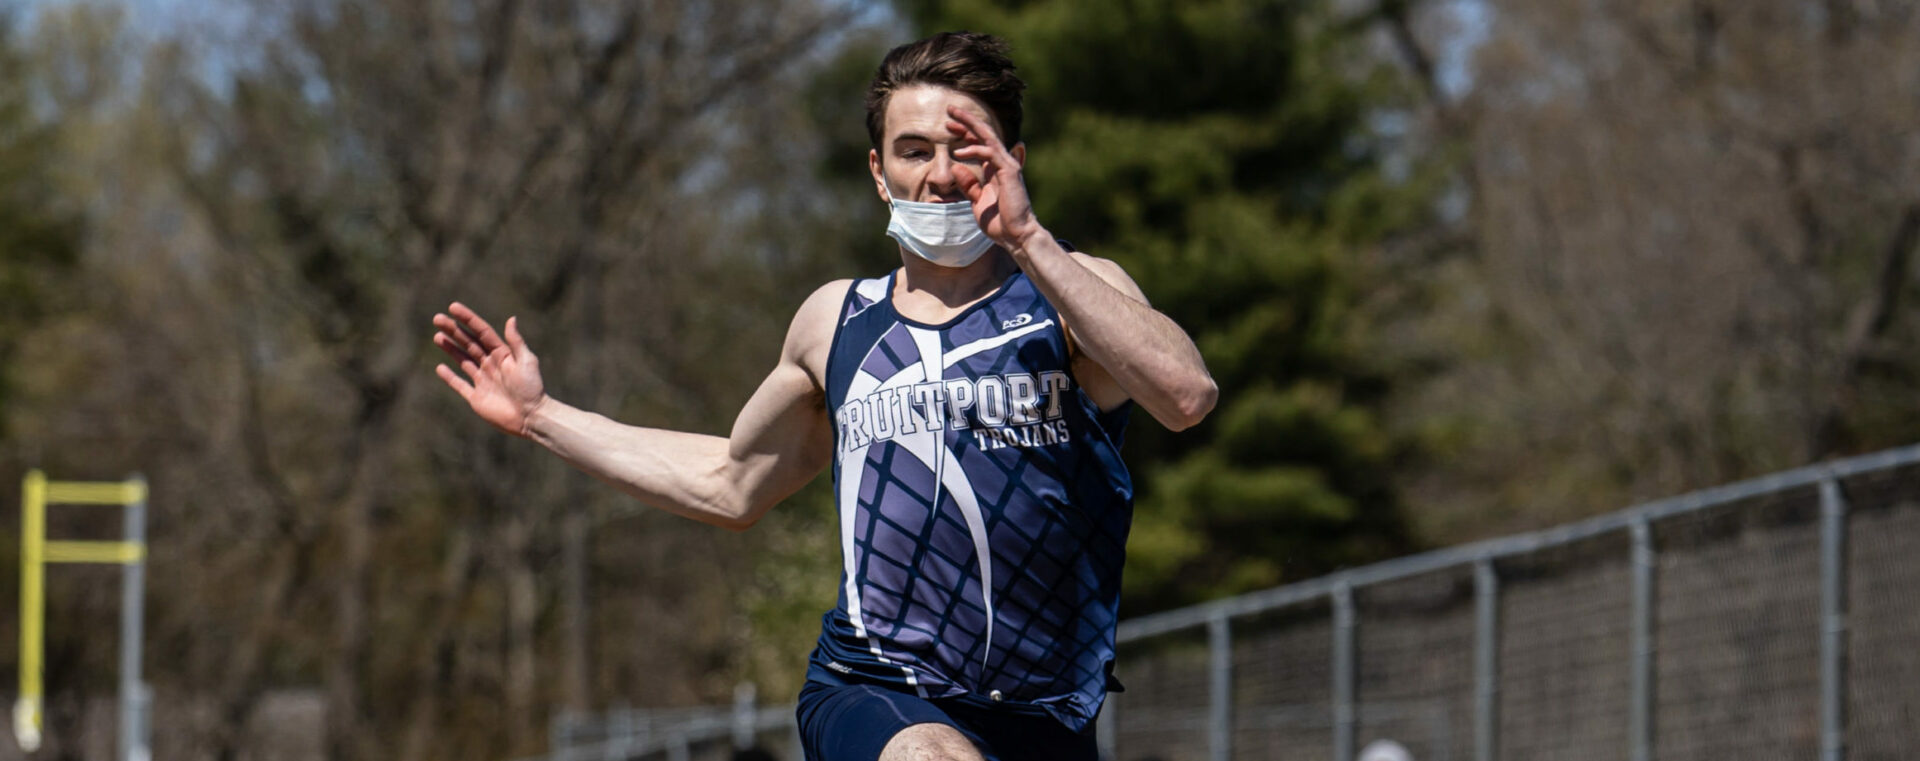 Fruitport's Dakota Mitchell quietly had a terrific day at the GMAA track meet, now eyeing state honors in upcoming weeks